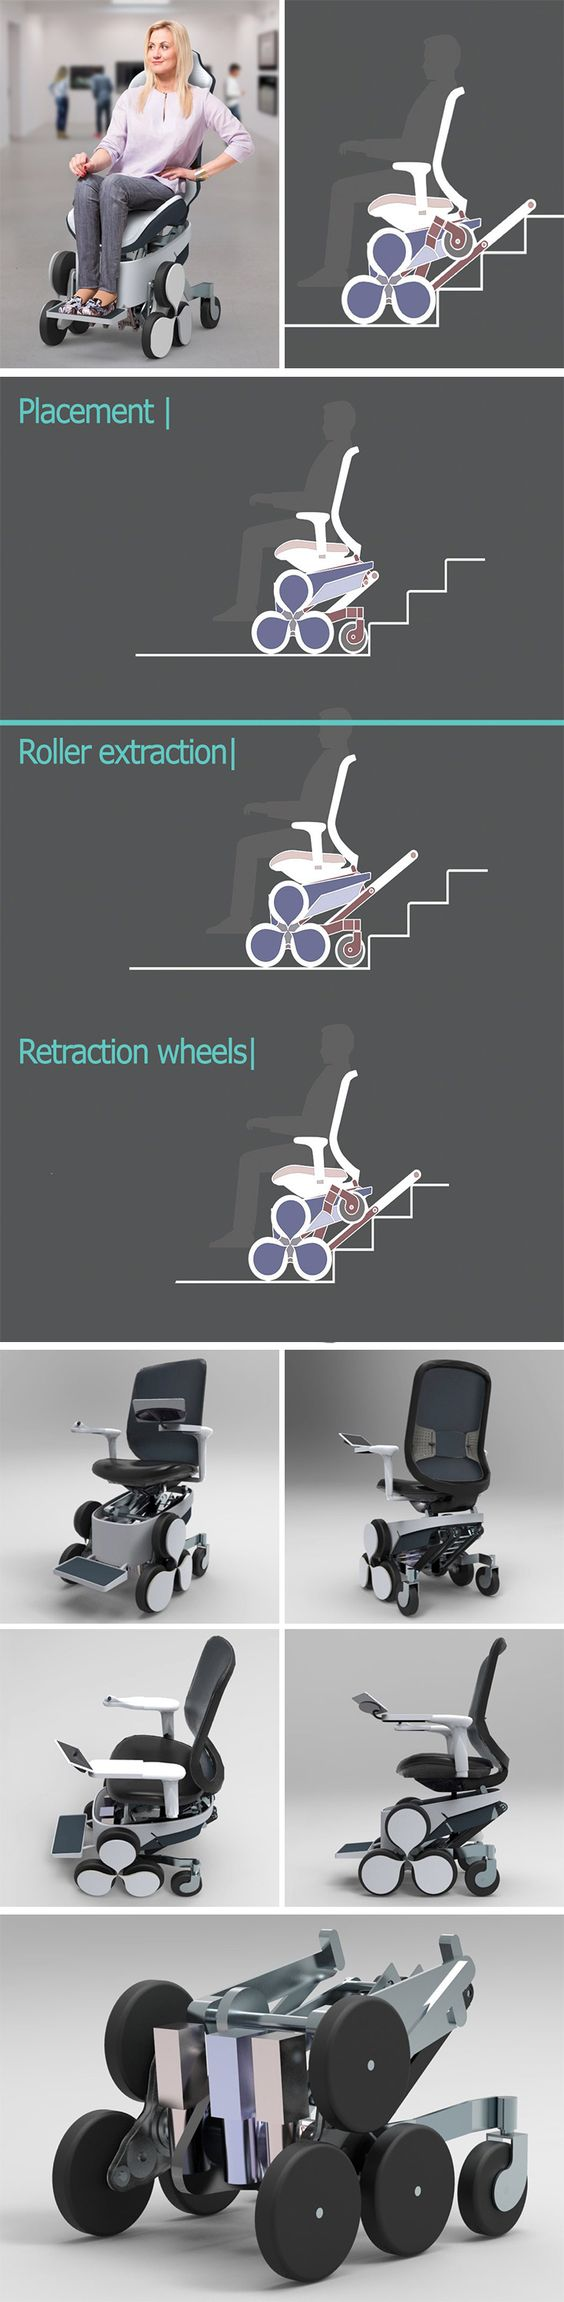 Wheelchair Q5 is a mobility solution the disabled community has been waiting for. When the wheelchair operator is faced with stairs, hills or other uneven surfaces, they only have to switch modes to tackles obstacles. By making more areas accessible, the design aims to increase the user's sense of independence and confidence.